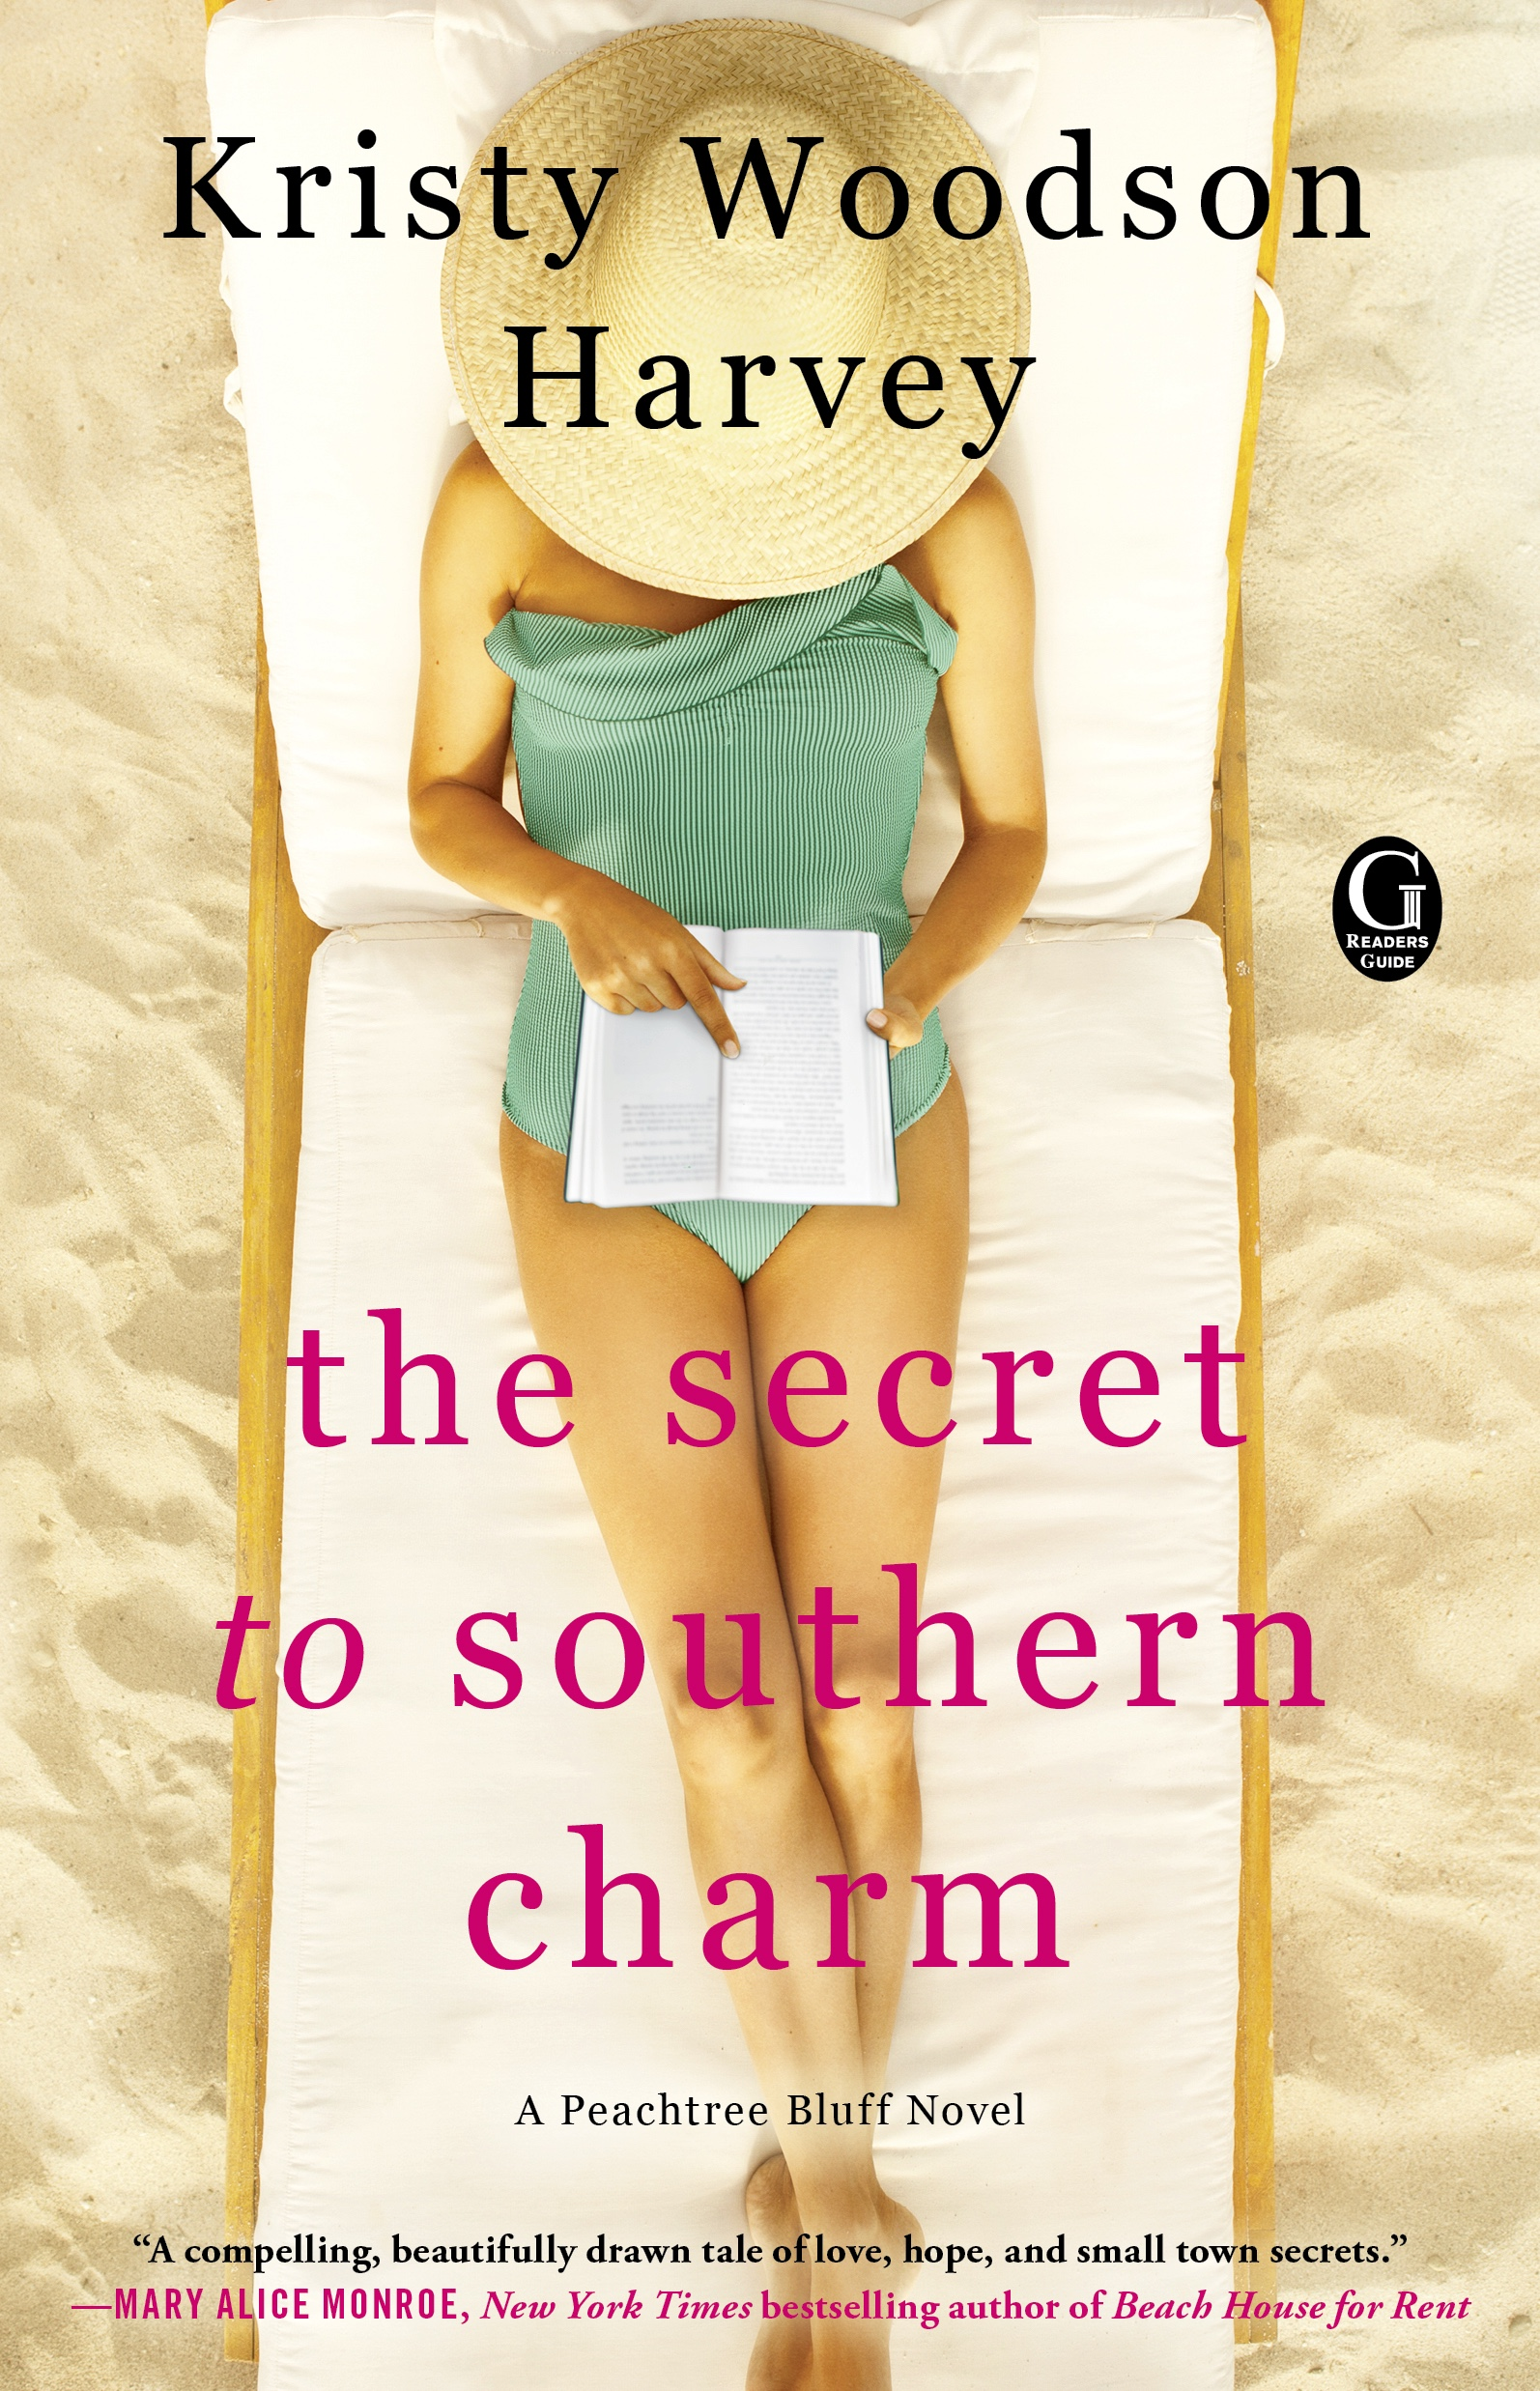 The Secret to Southern Charm